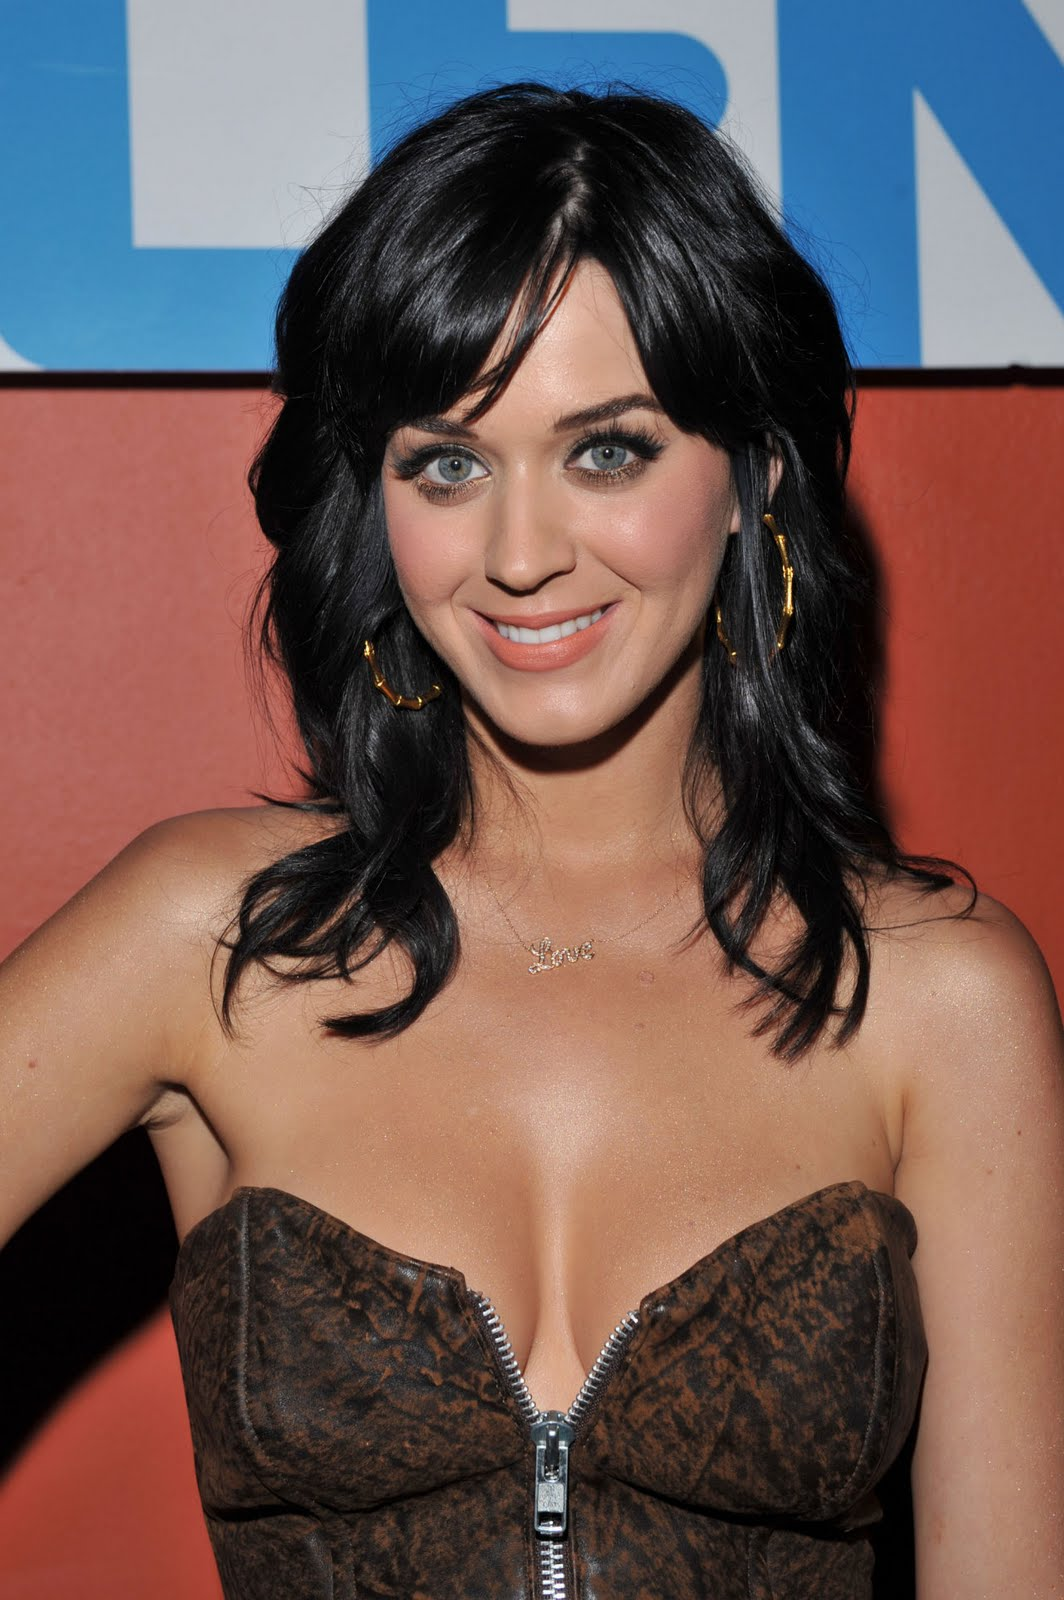 Celebrity Pics Jenna Pietersen: World Famous Celebrities: Russell Brand Katy Perry Sued